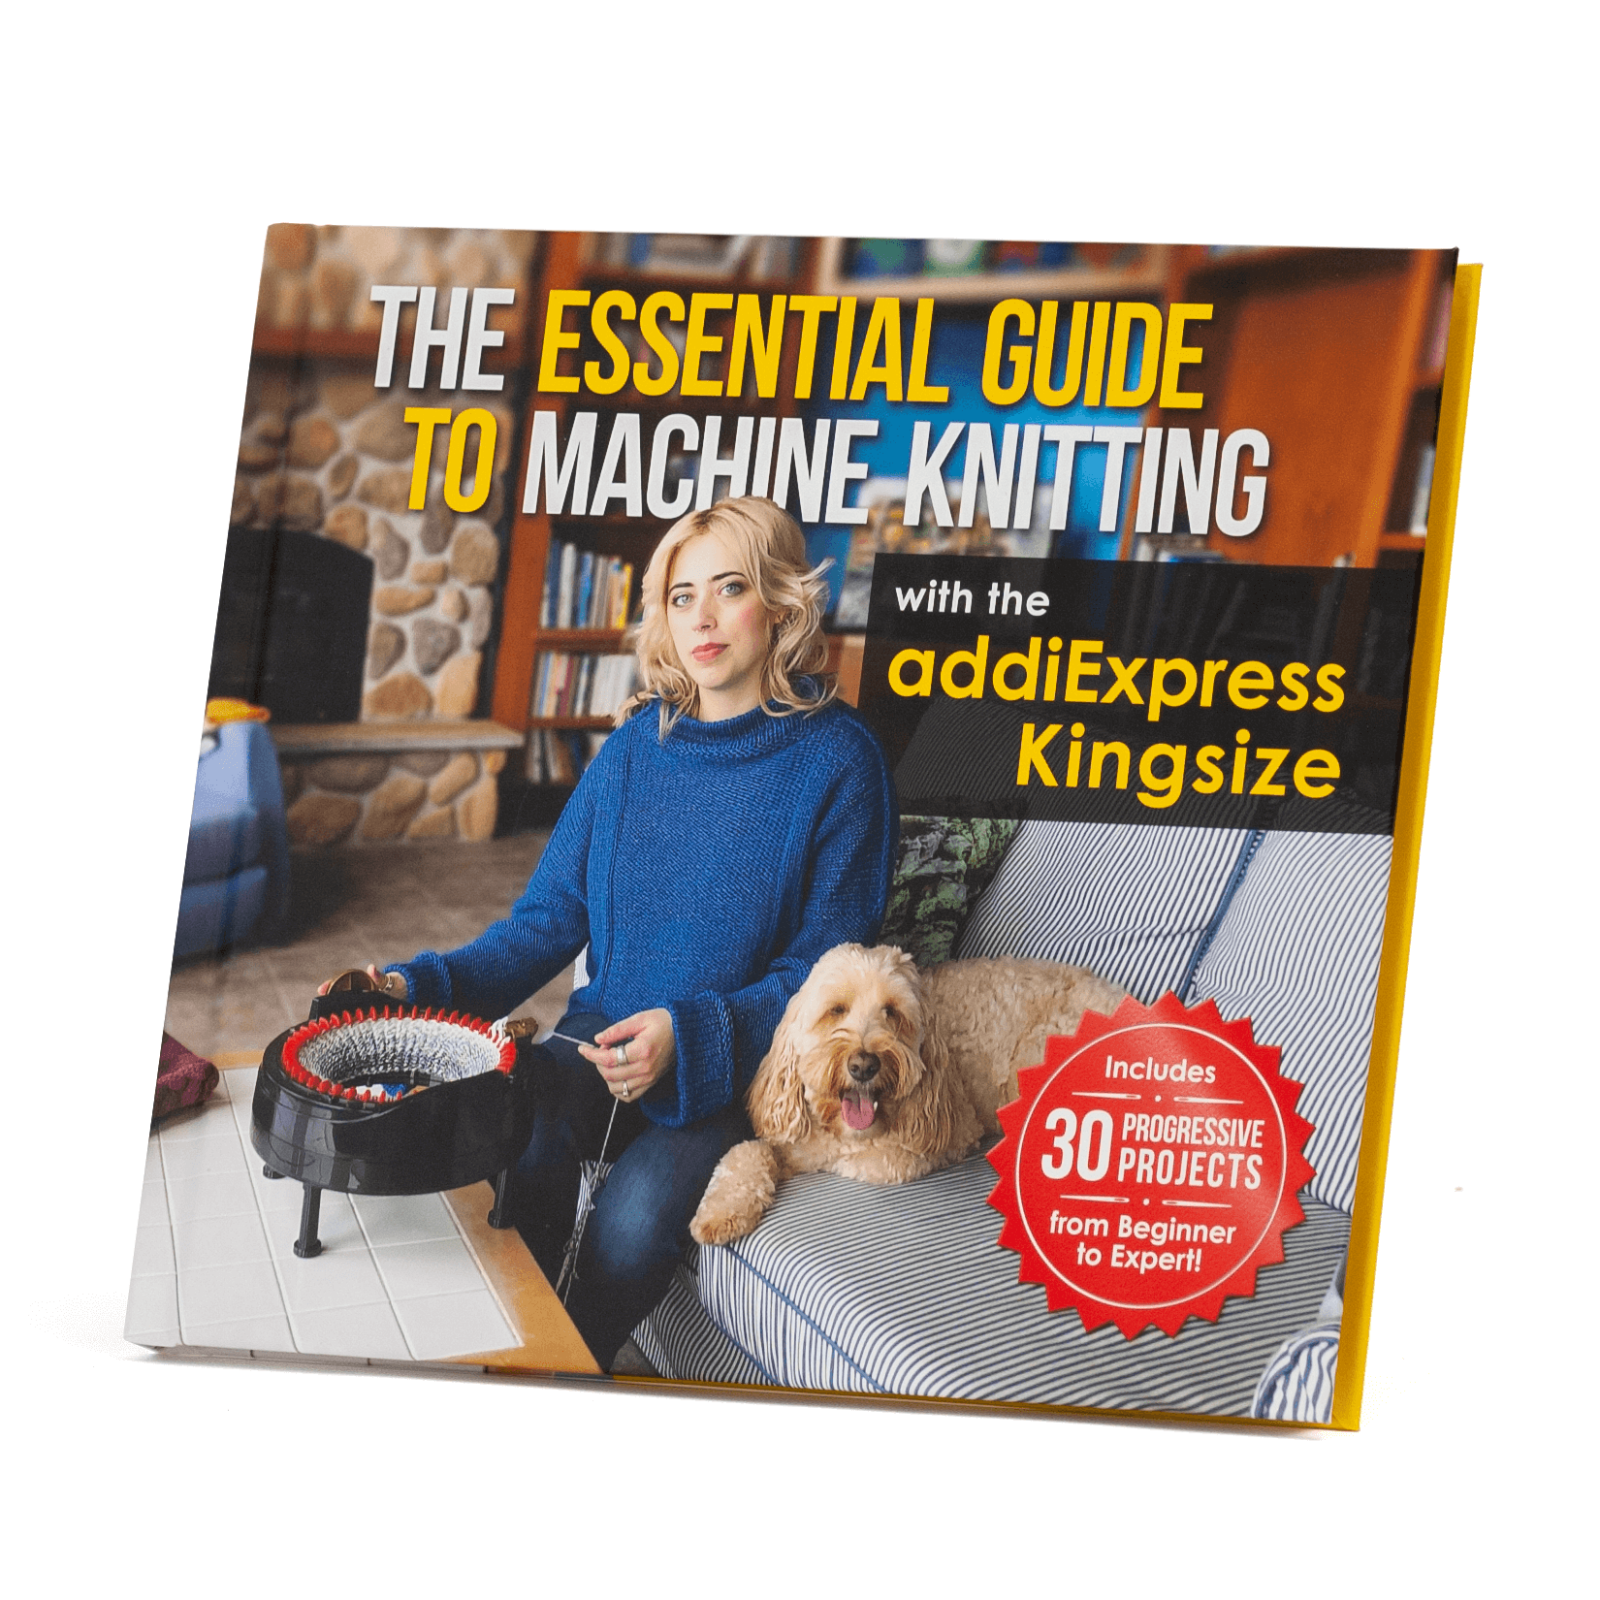 The Essential Guide to Machine Knitting - physical book